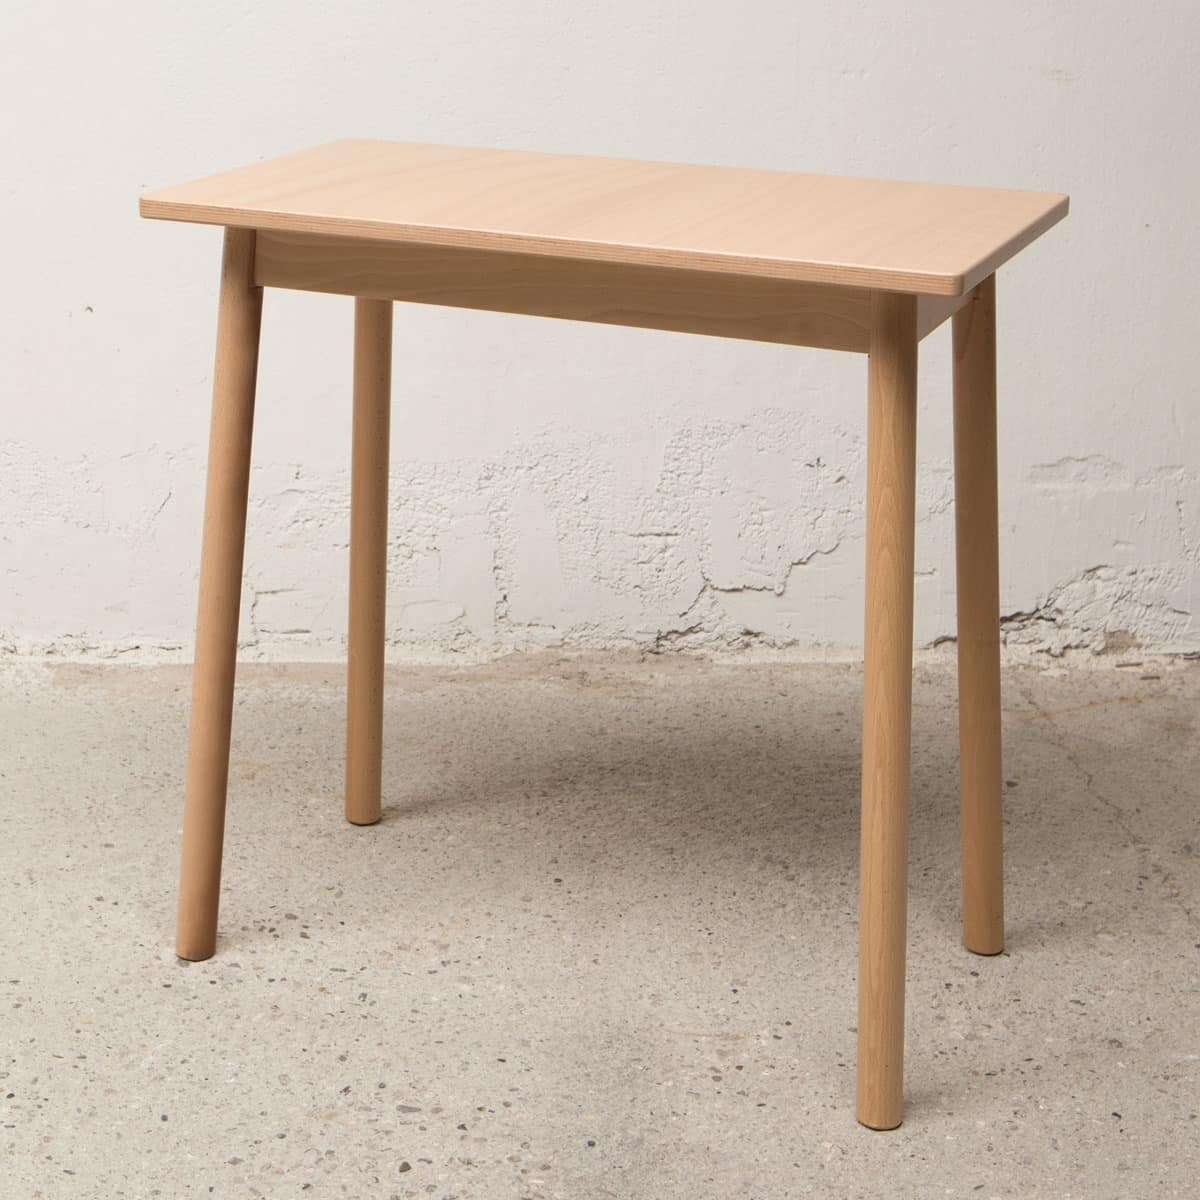 Desk Bolz, Rectangular table, easy to clean, antibacterial